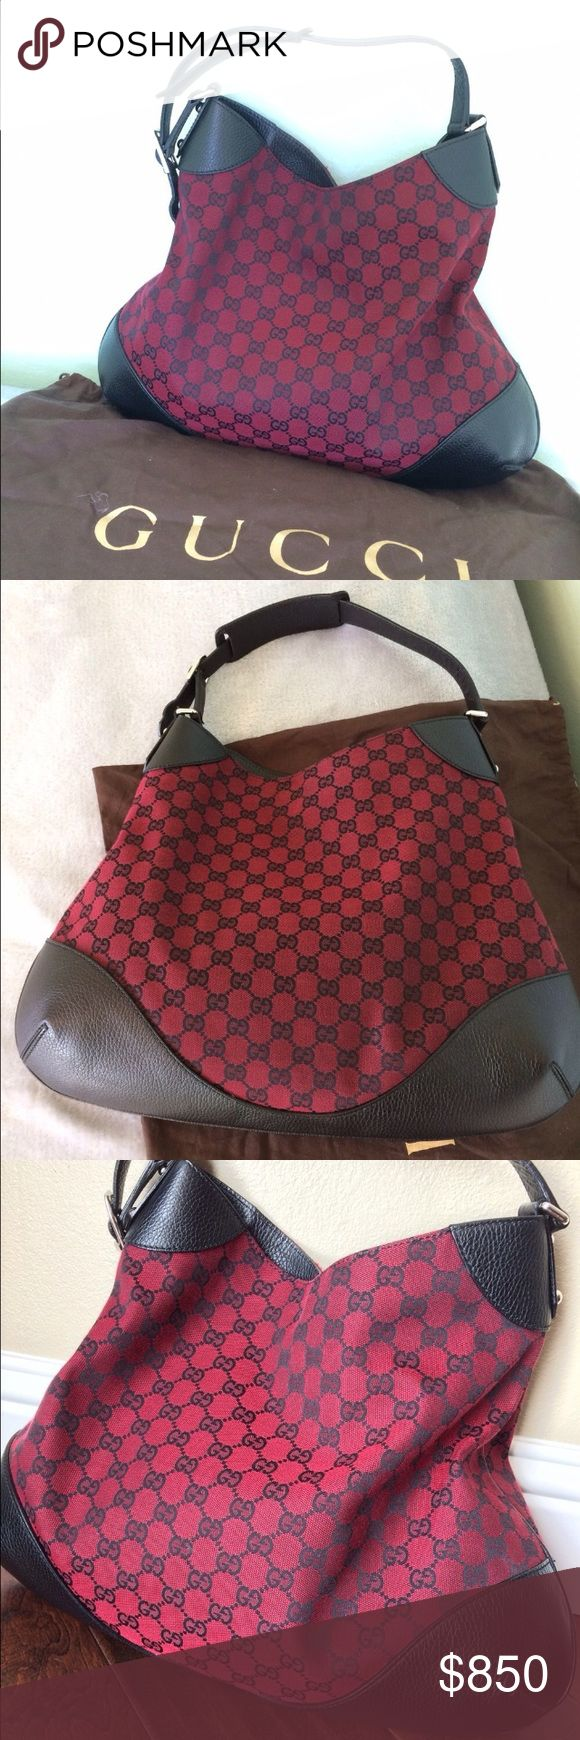 burberry wallet sale outlet saww  Gucci hobo bag